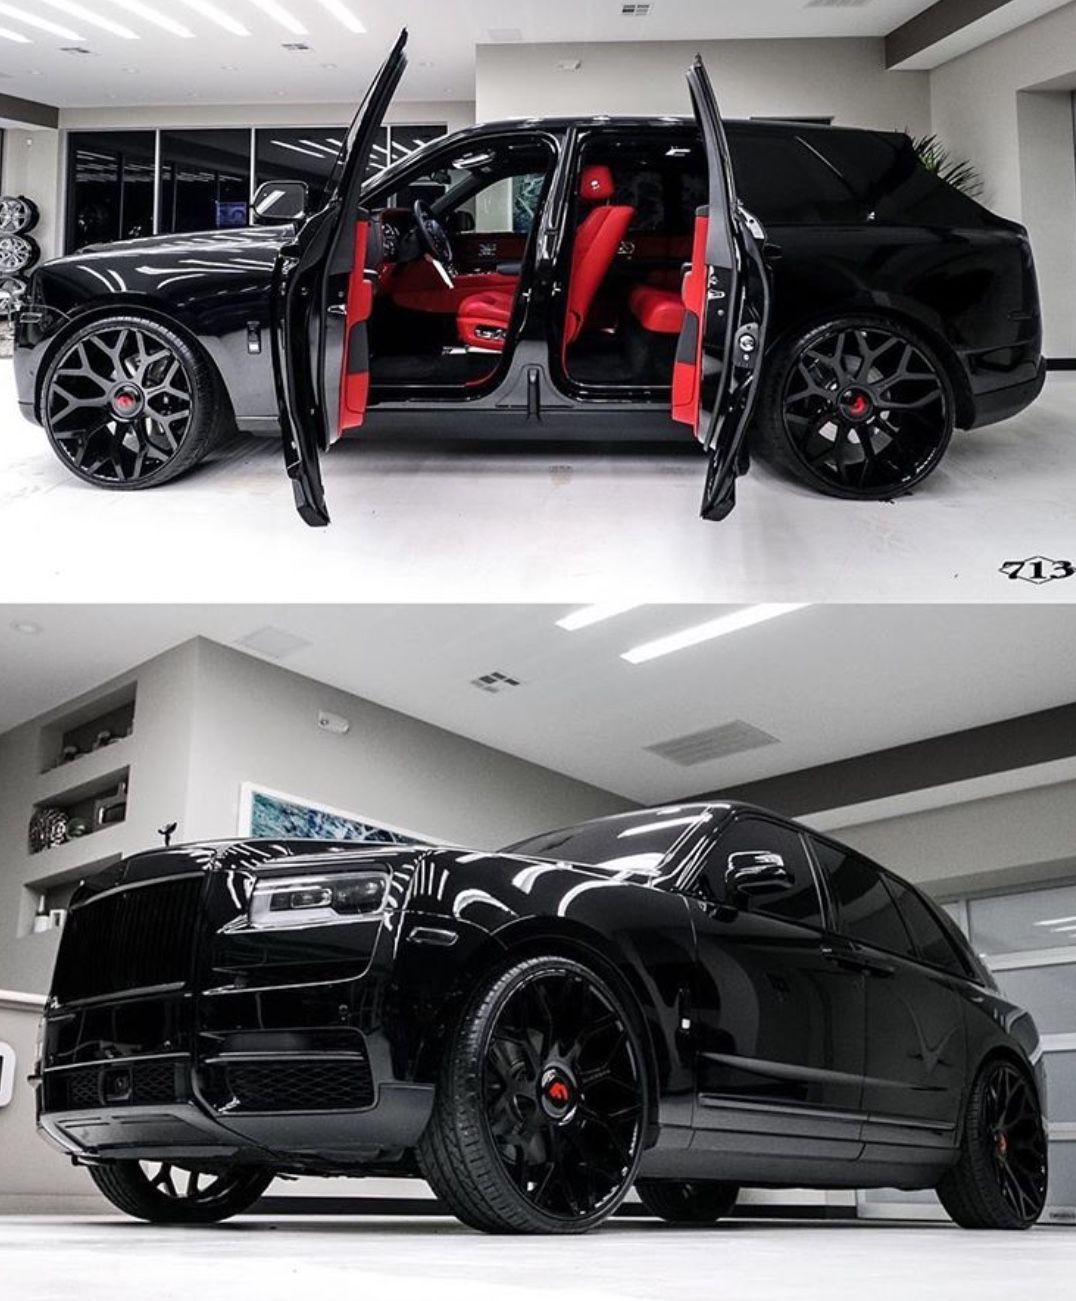 I Like These Luxurious Cars They Suit The Modern Purposes Complete The Full Personality Appearance In Every In 2020 Best Luxury Cars Sports Cars Luxury Top Luxury Cars